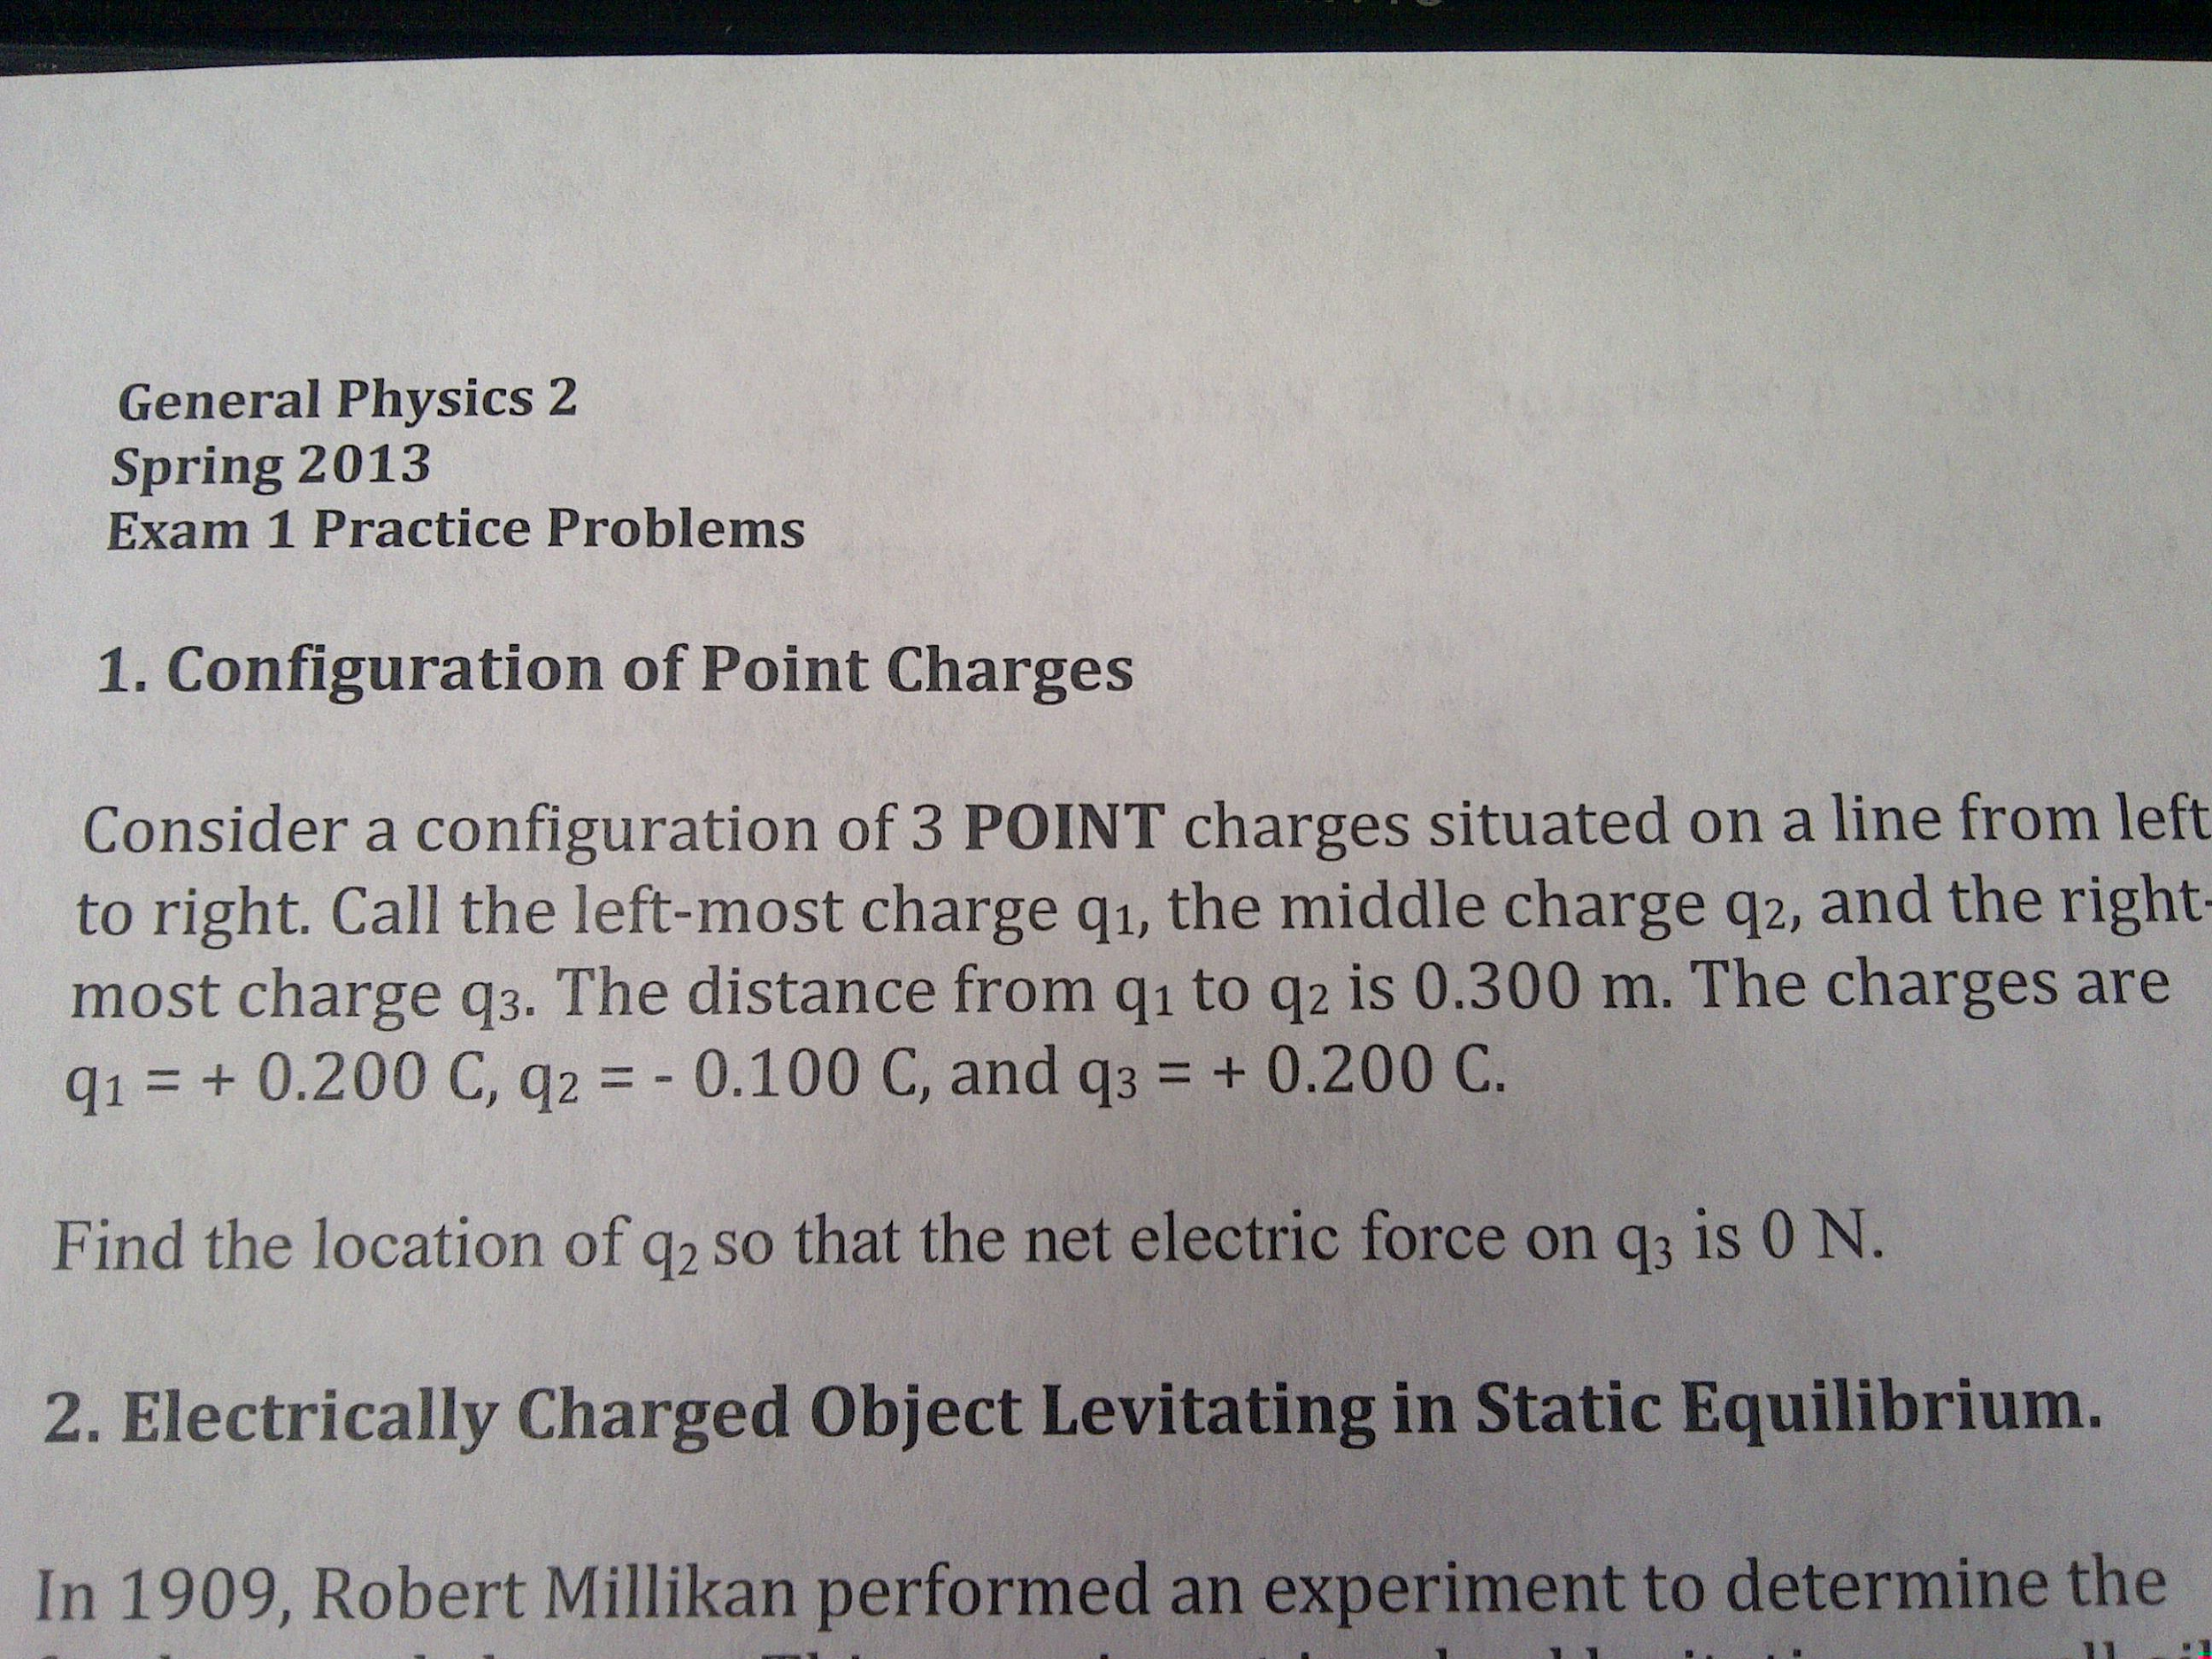 Consider a configuration of 3 POINT charges situat